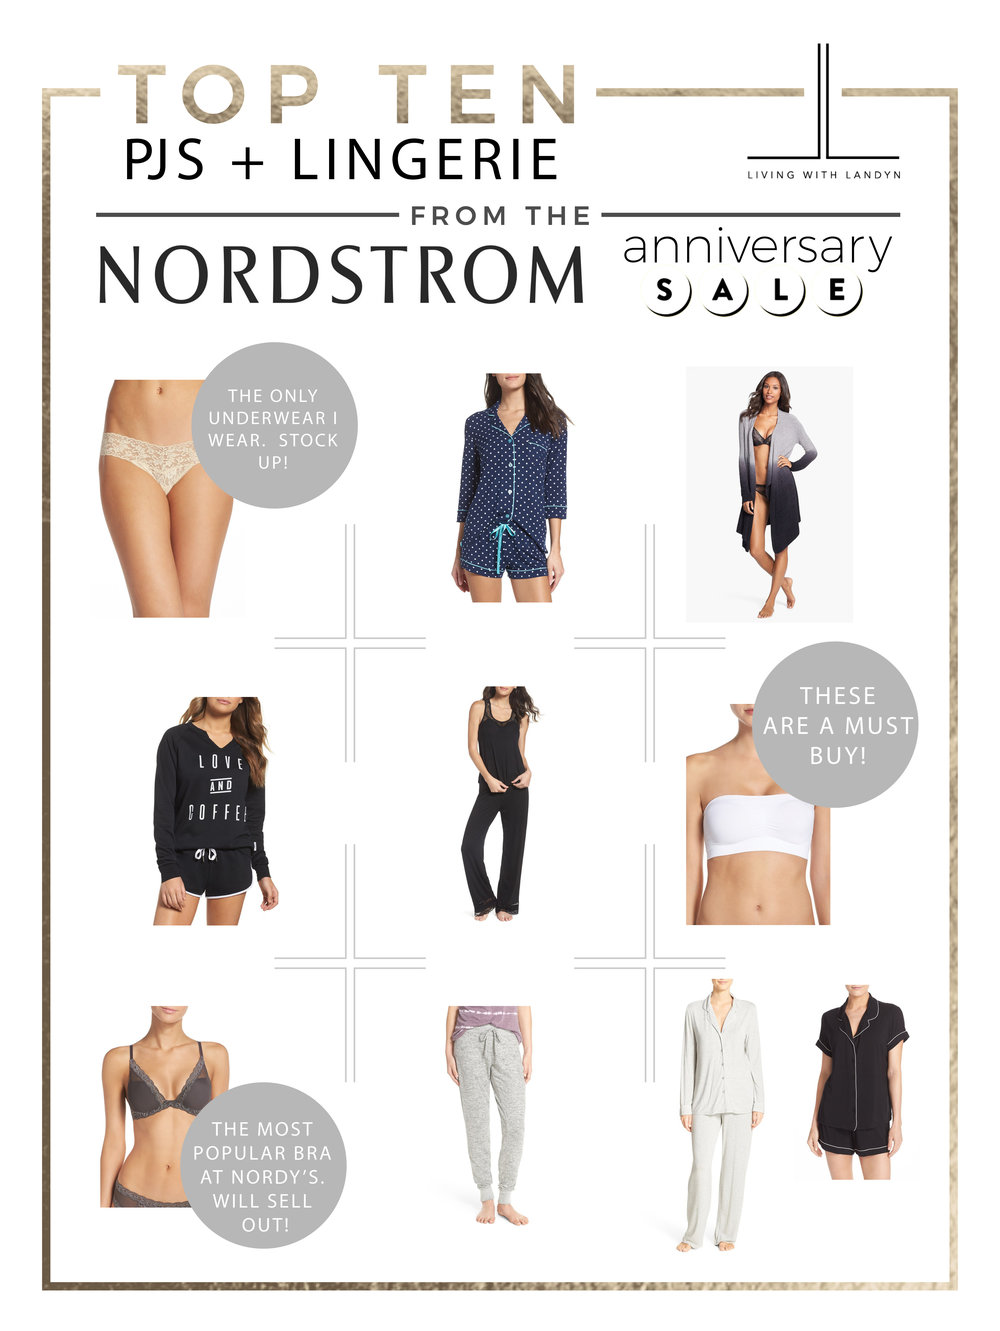 TOP 10 SLEEPWEAR AND LINGERIE PICKS FROM THE NORDSTROM ANNIVERSARY SALE